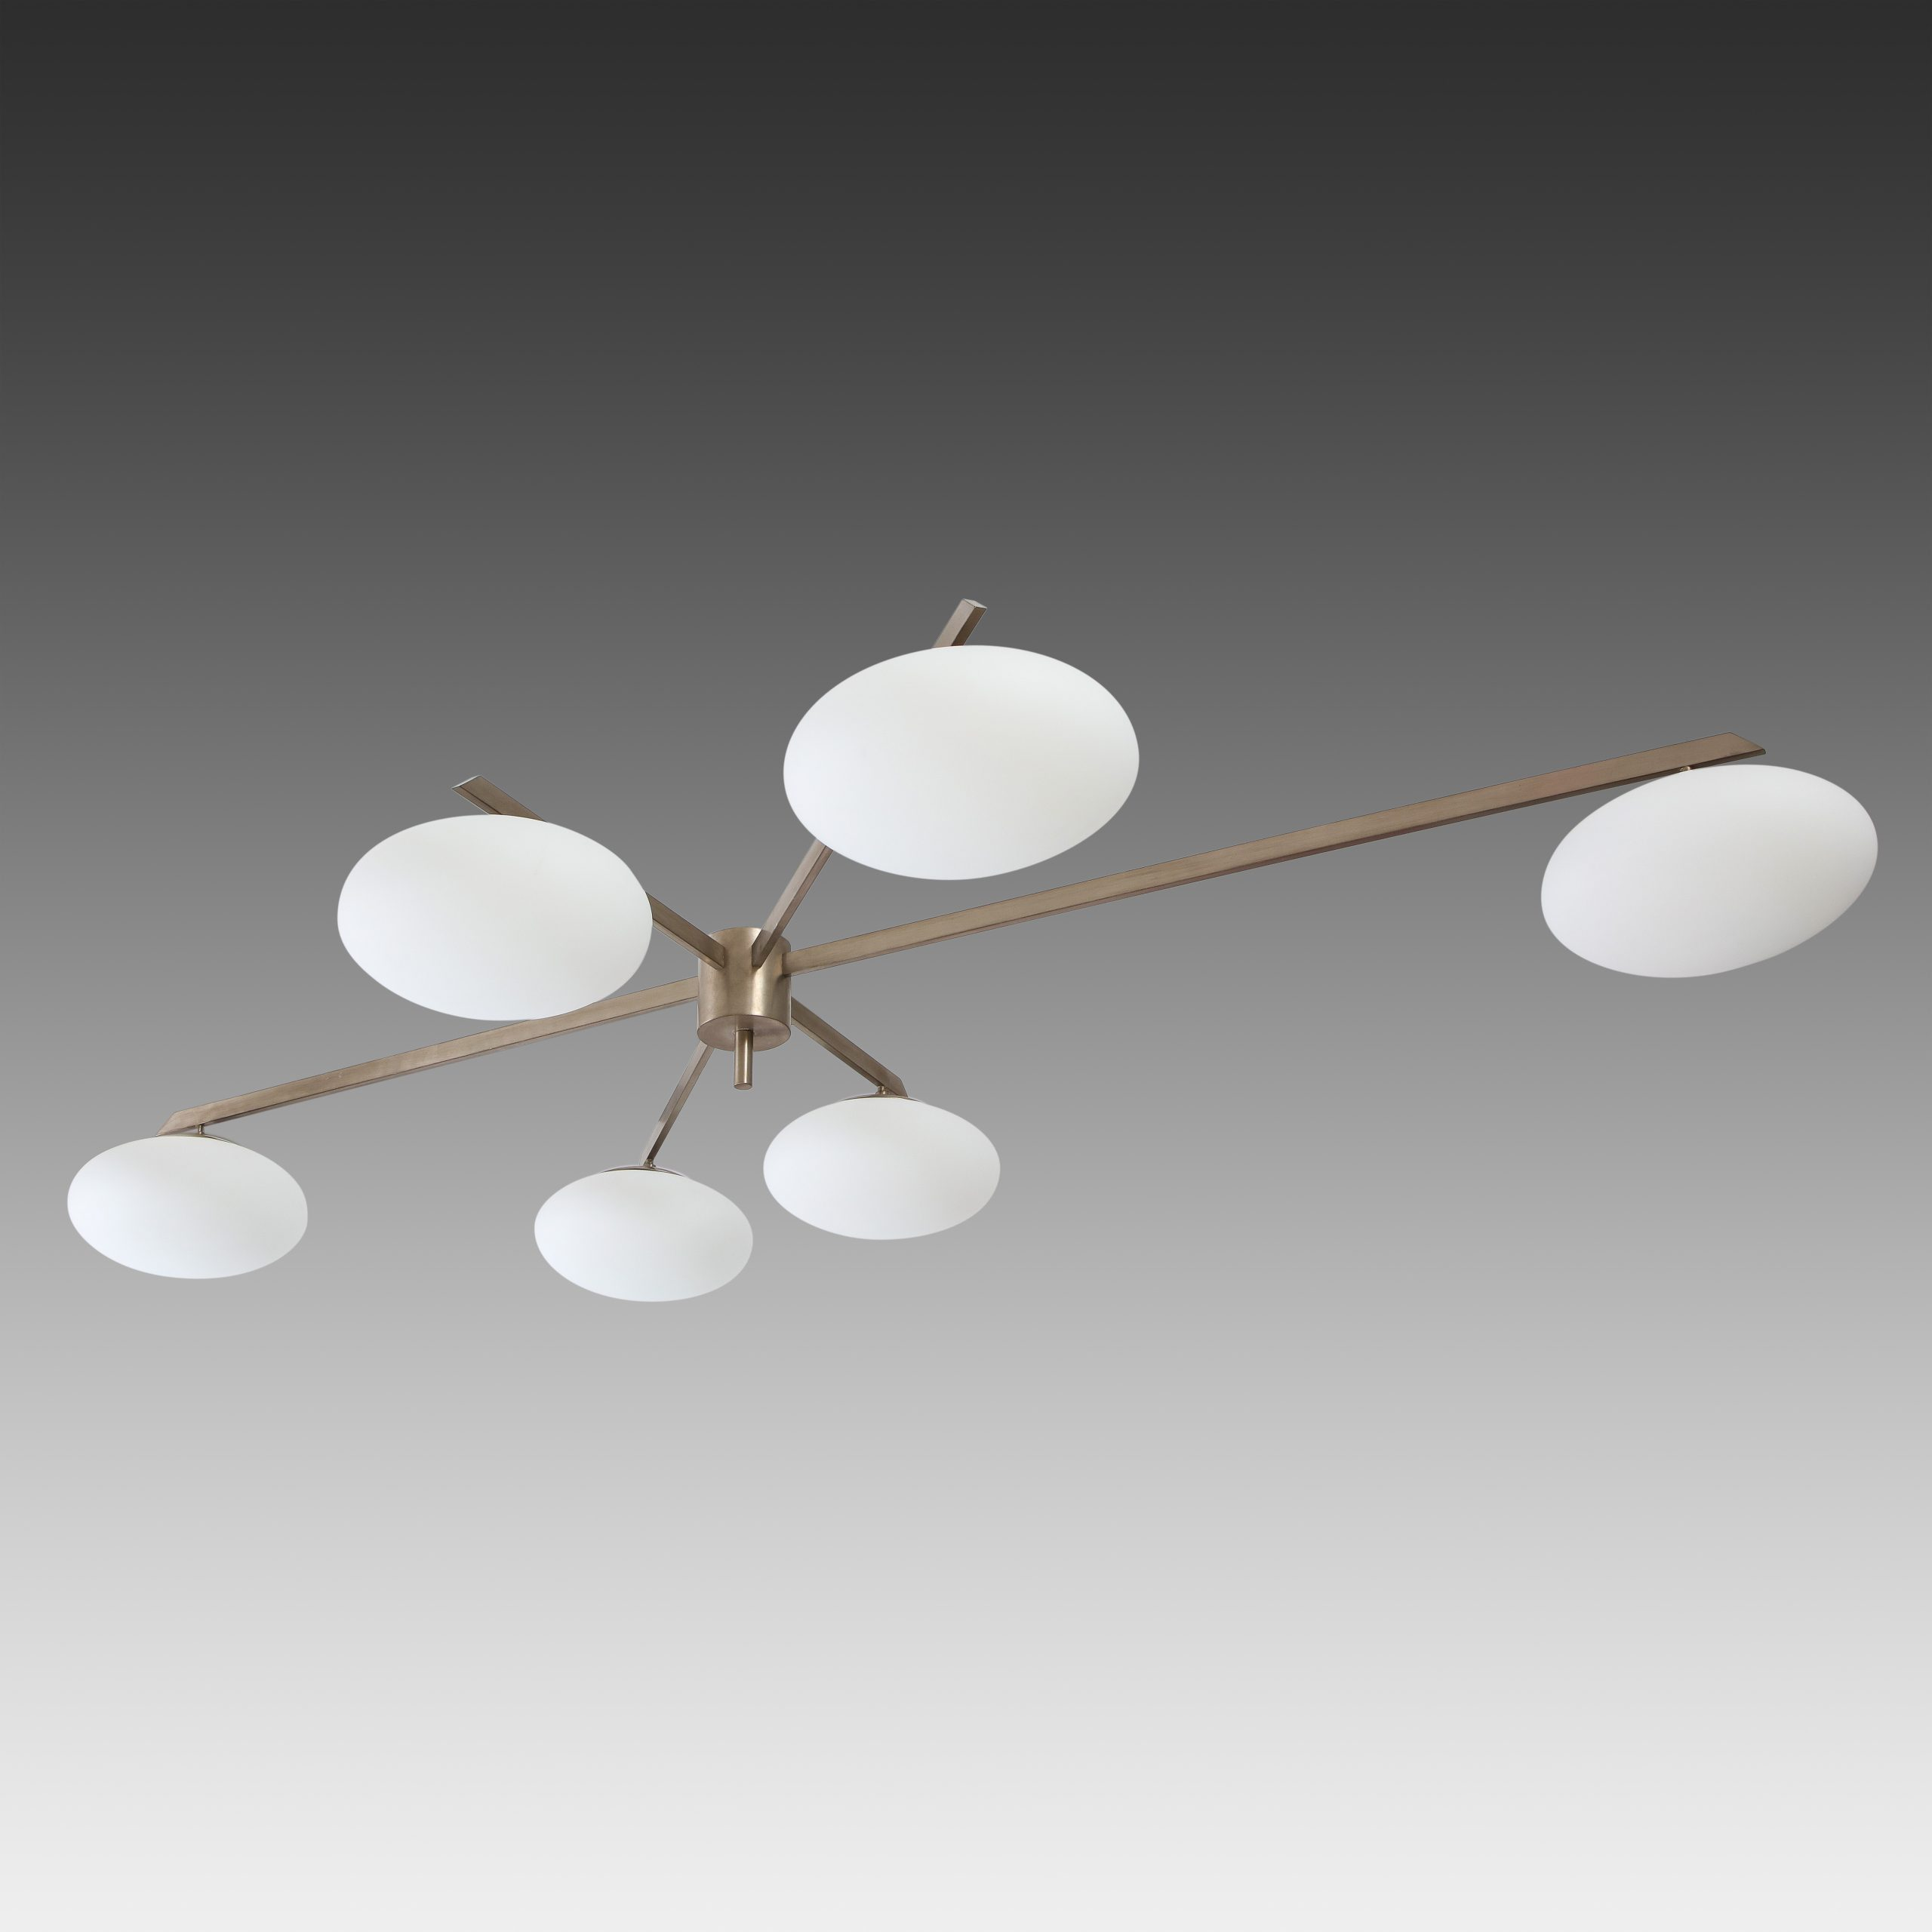 6 Lune Ceiling Light or Chandelier by Angelo Lelii for Arredoluce | soyun k.